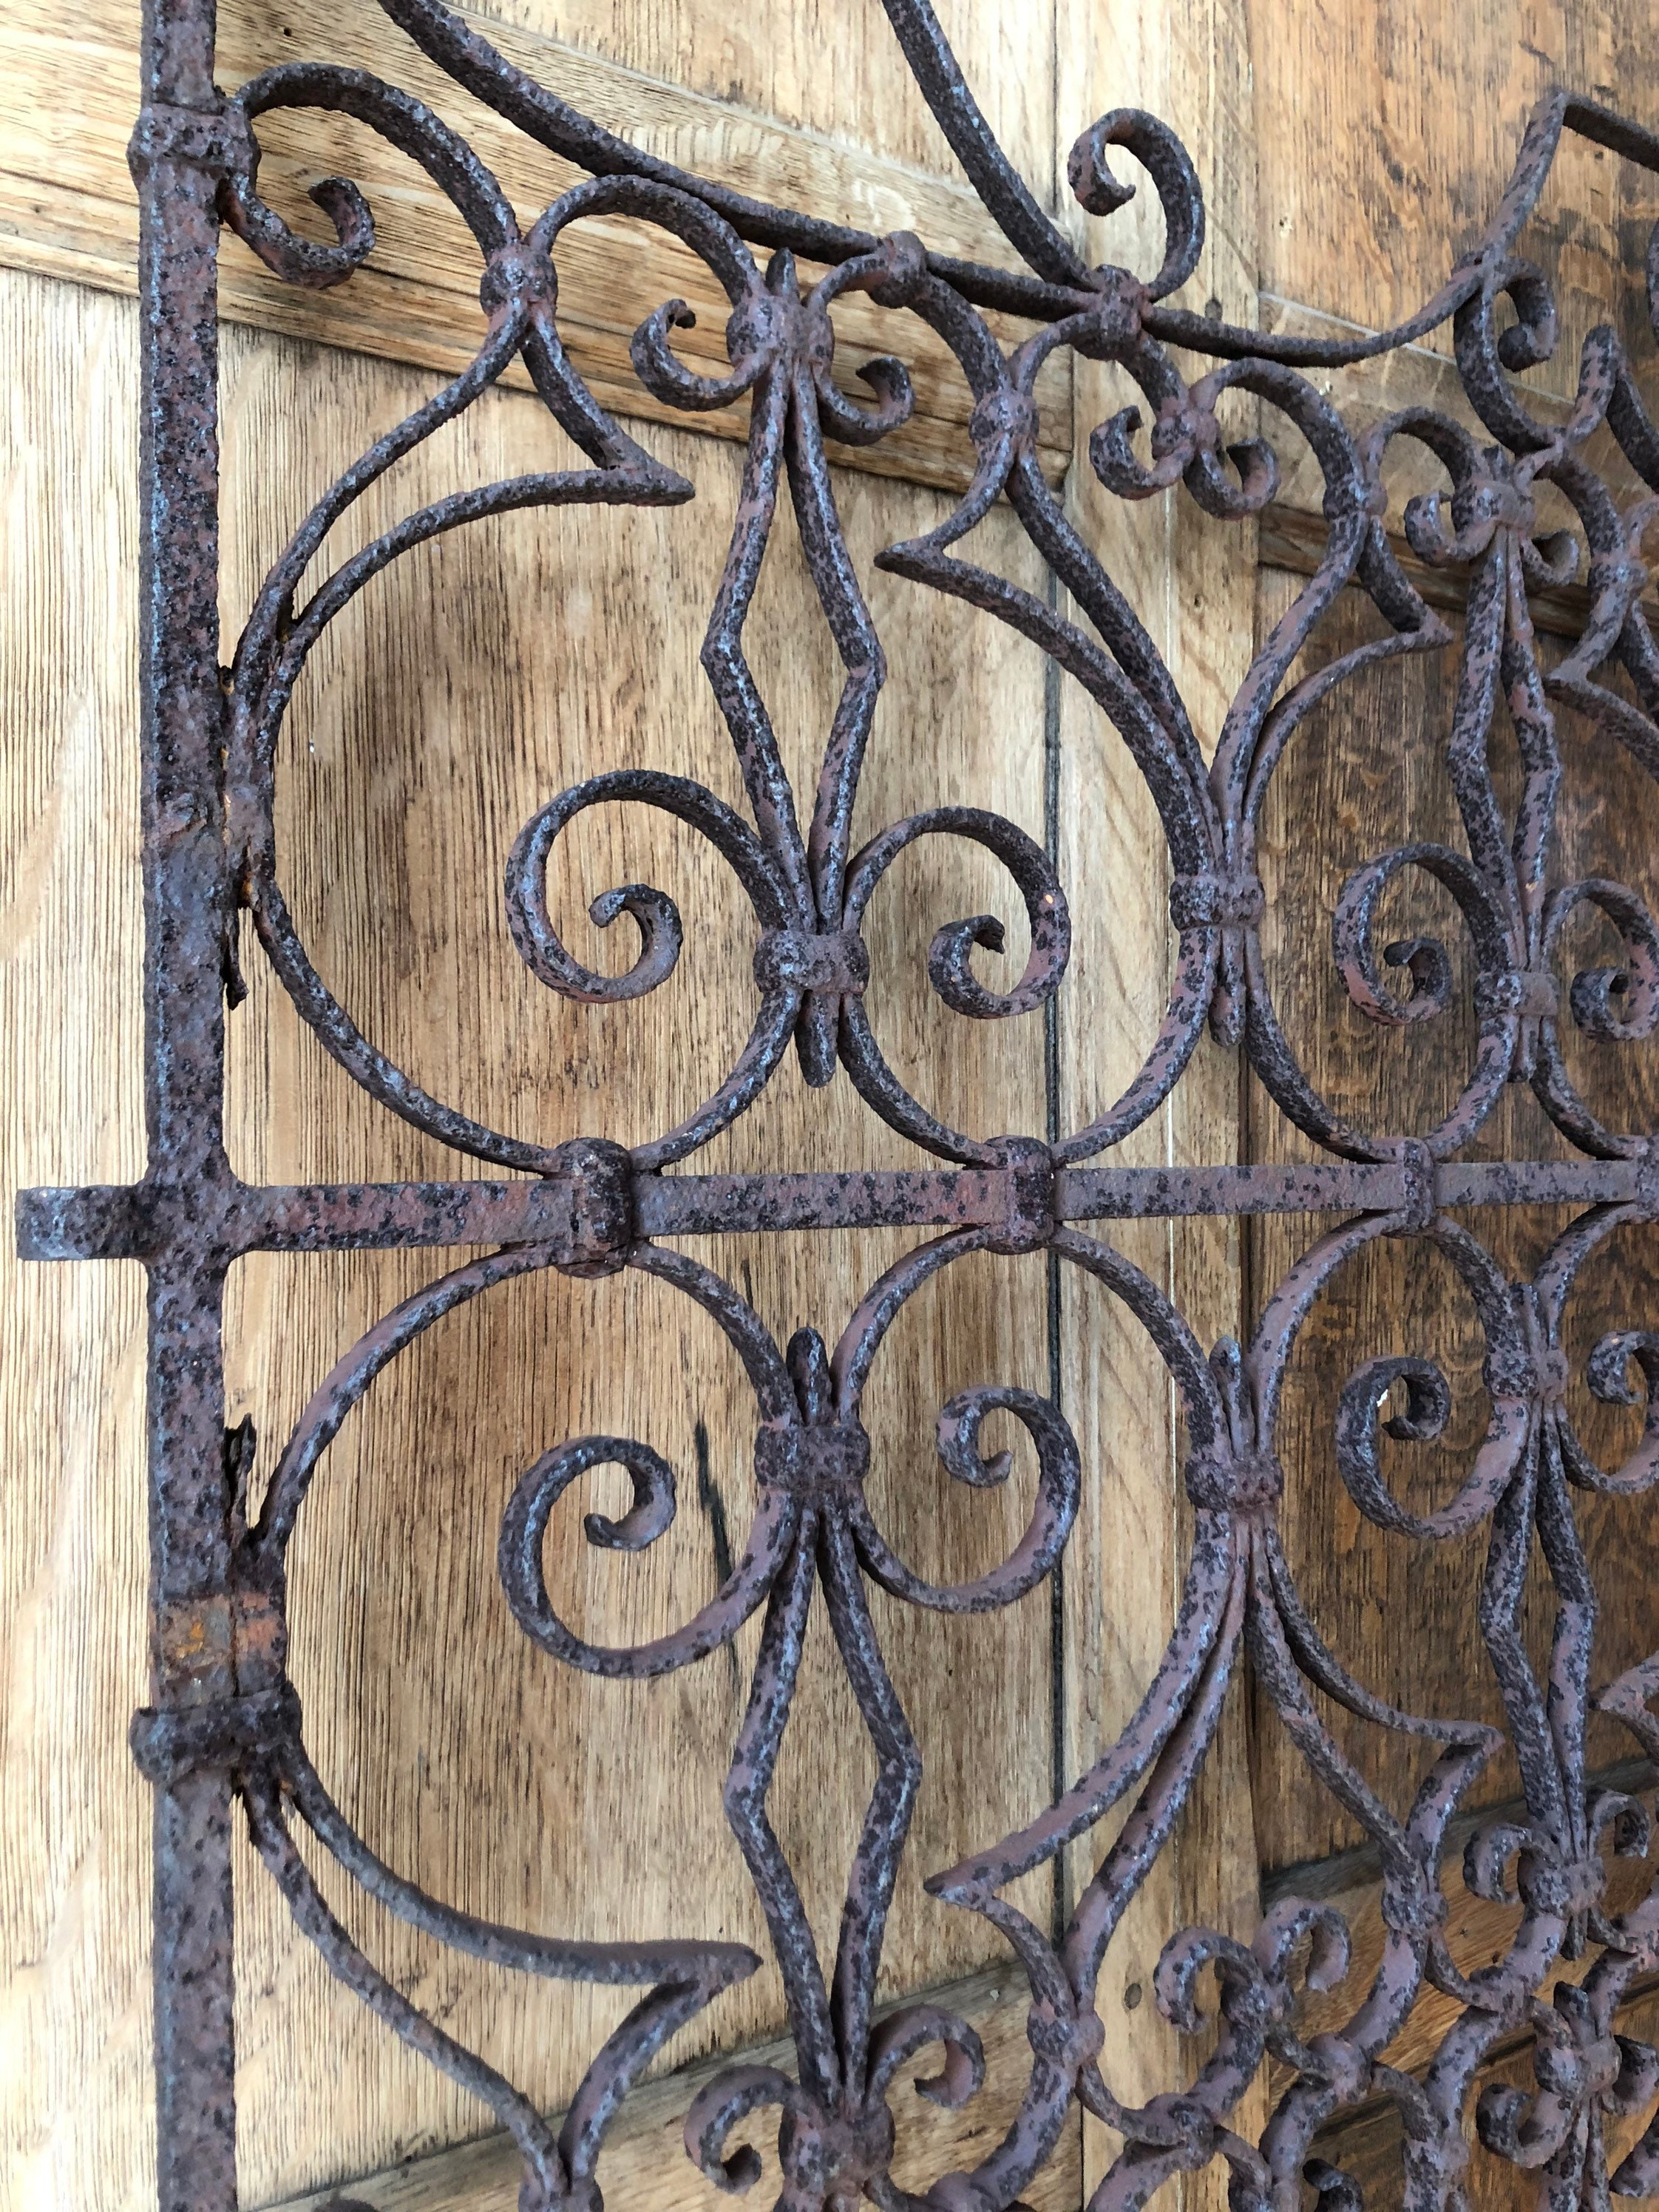 RESERVED - Unmatched PAIR of Antique Wrought Iron Gate, Wrought Iron Wall Decor, Rustic ...